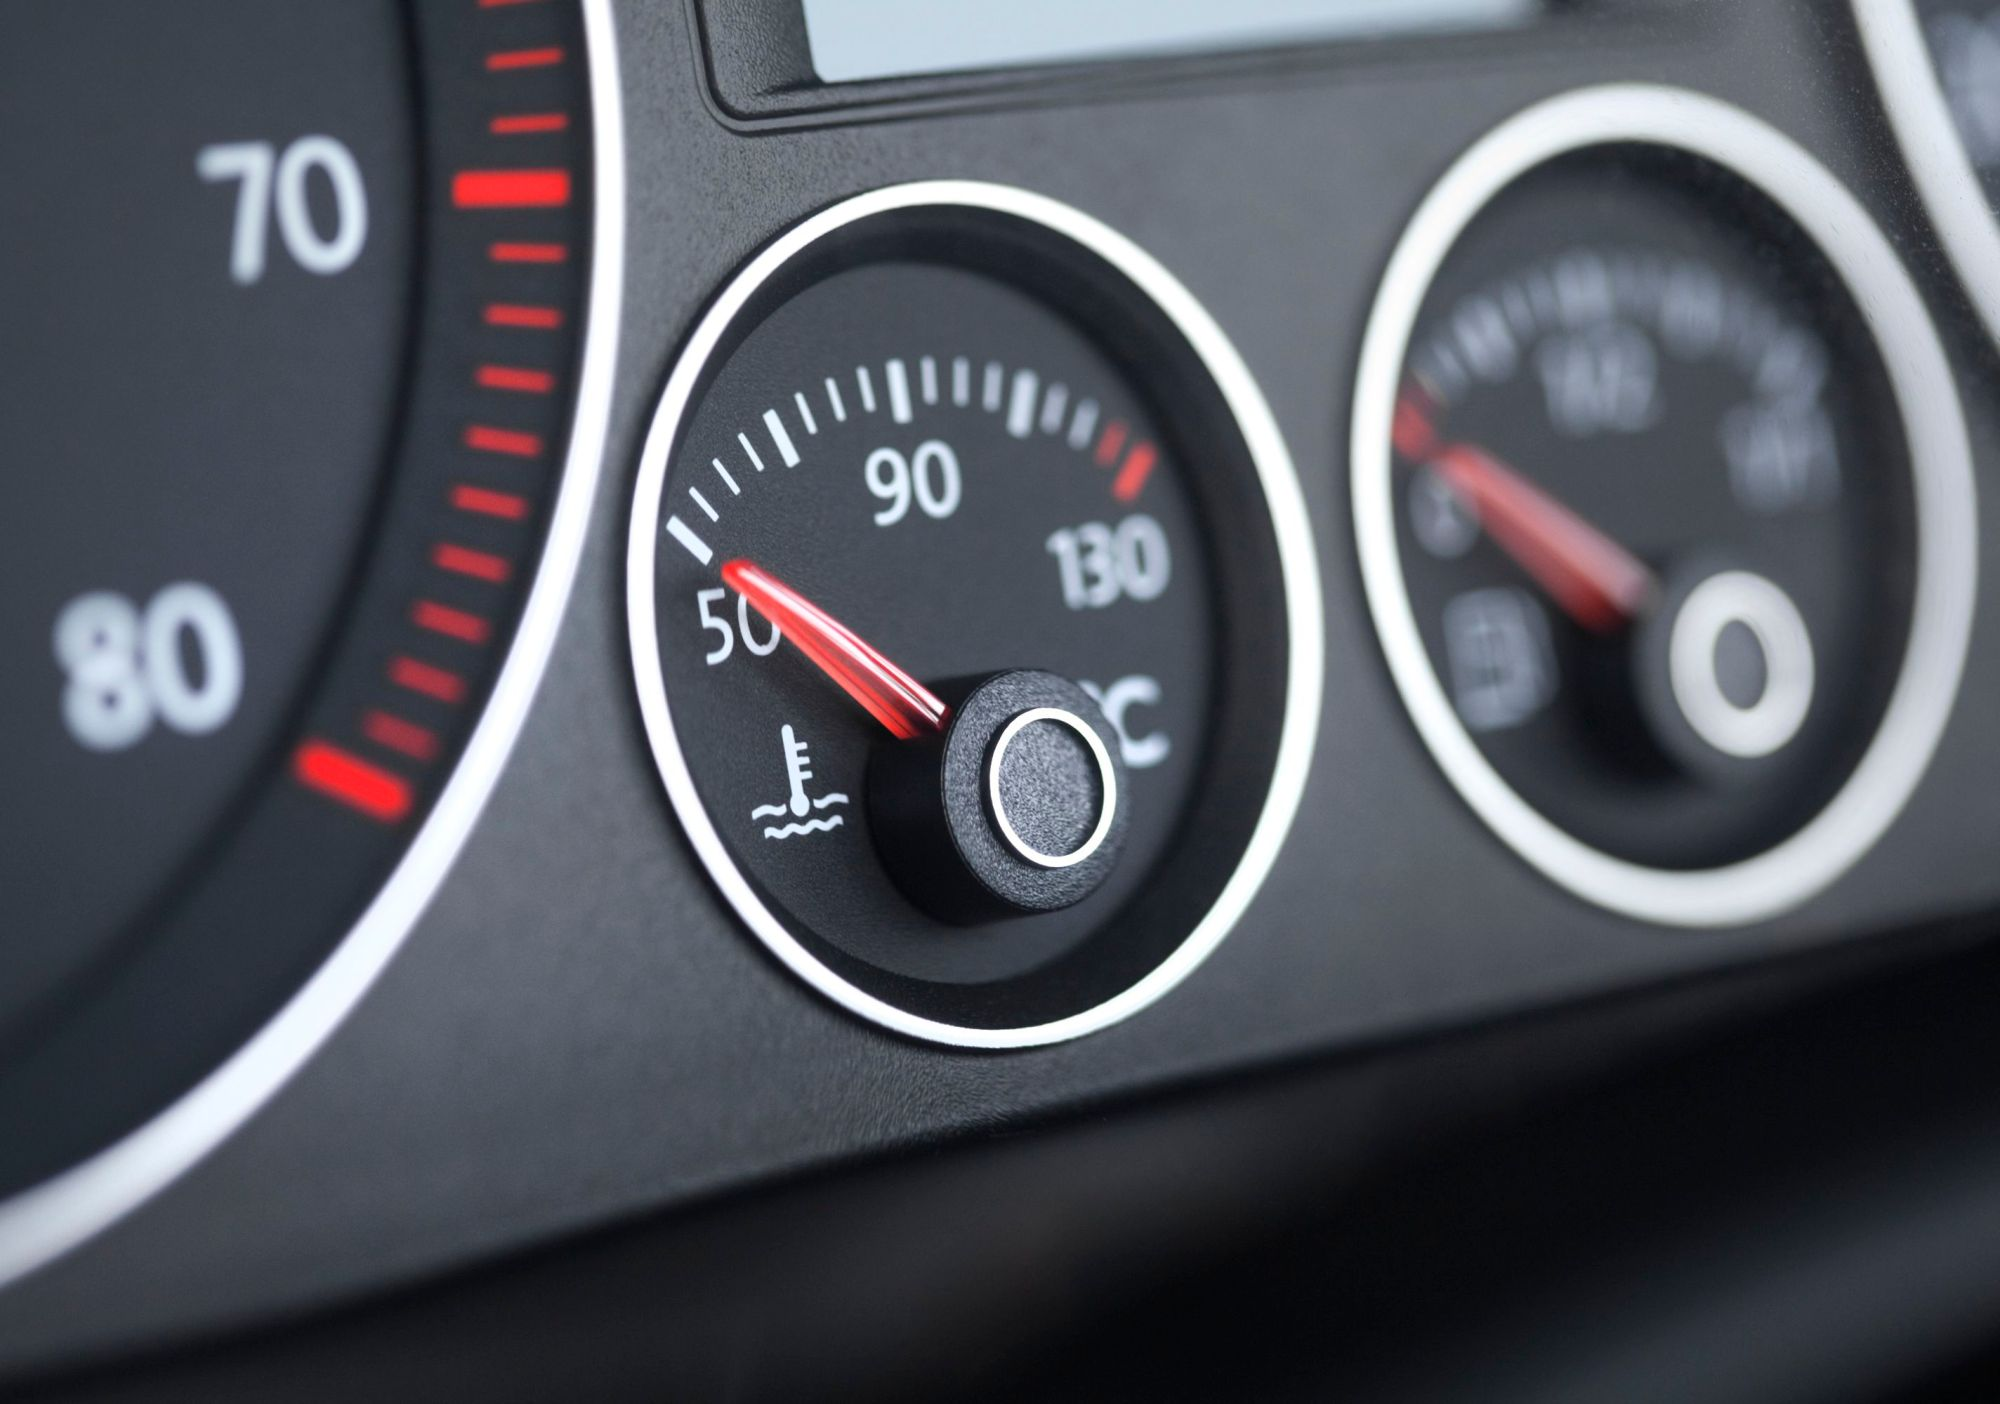 hight resolution of gauges in your car not working try these fixes